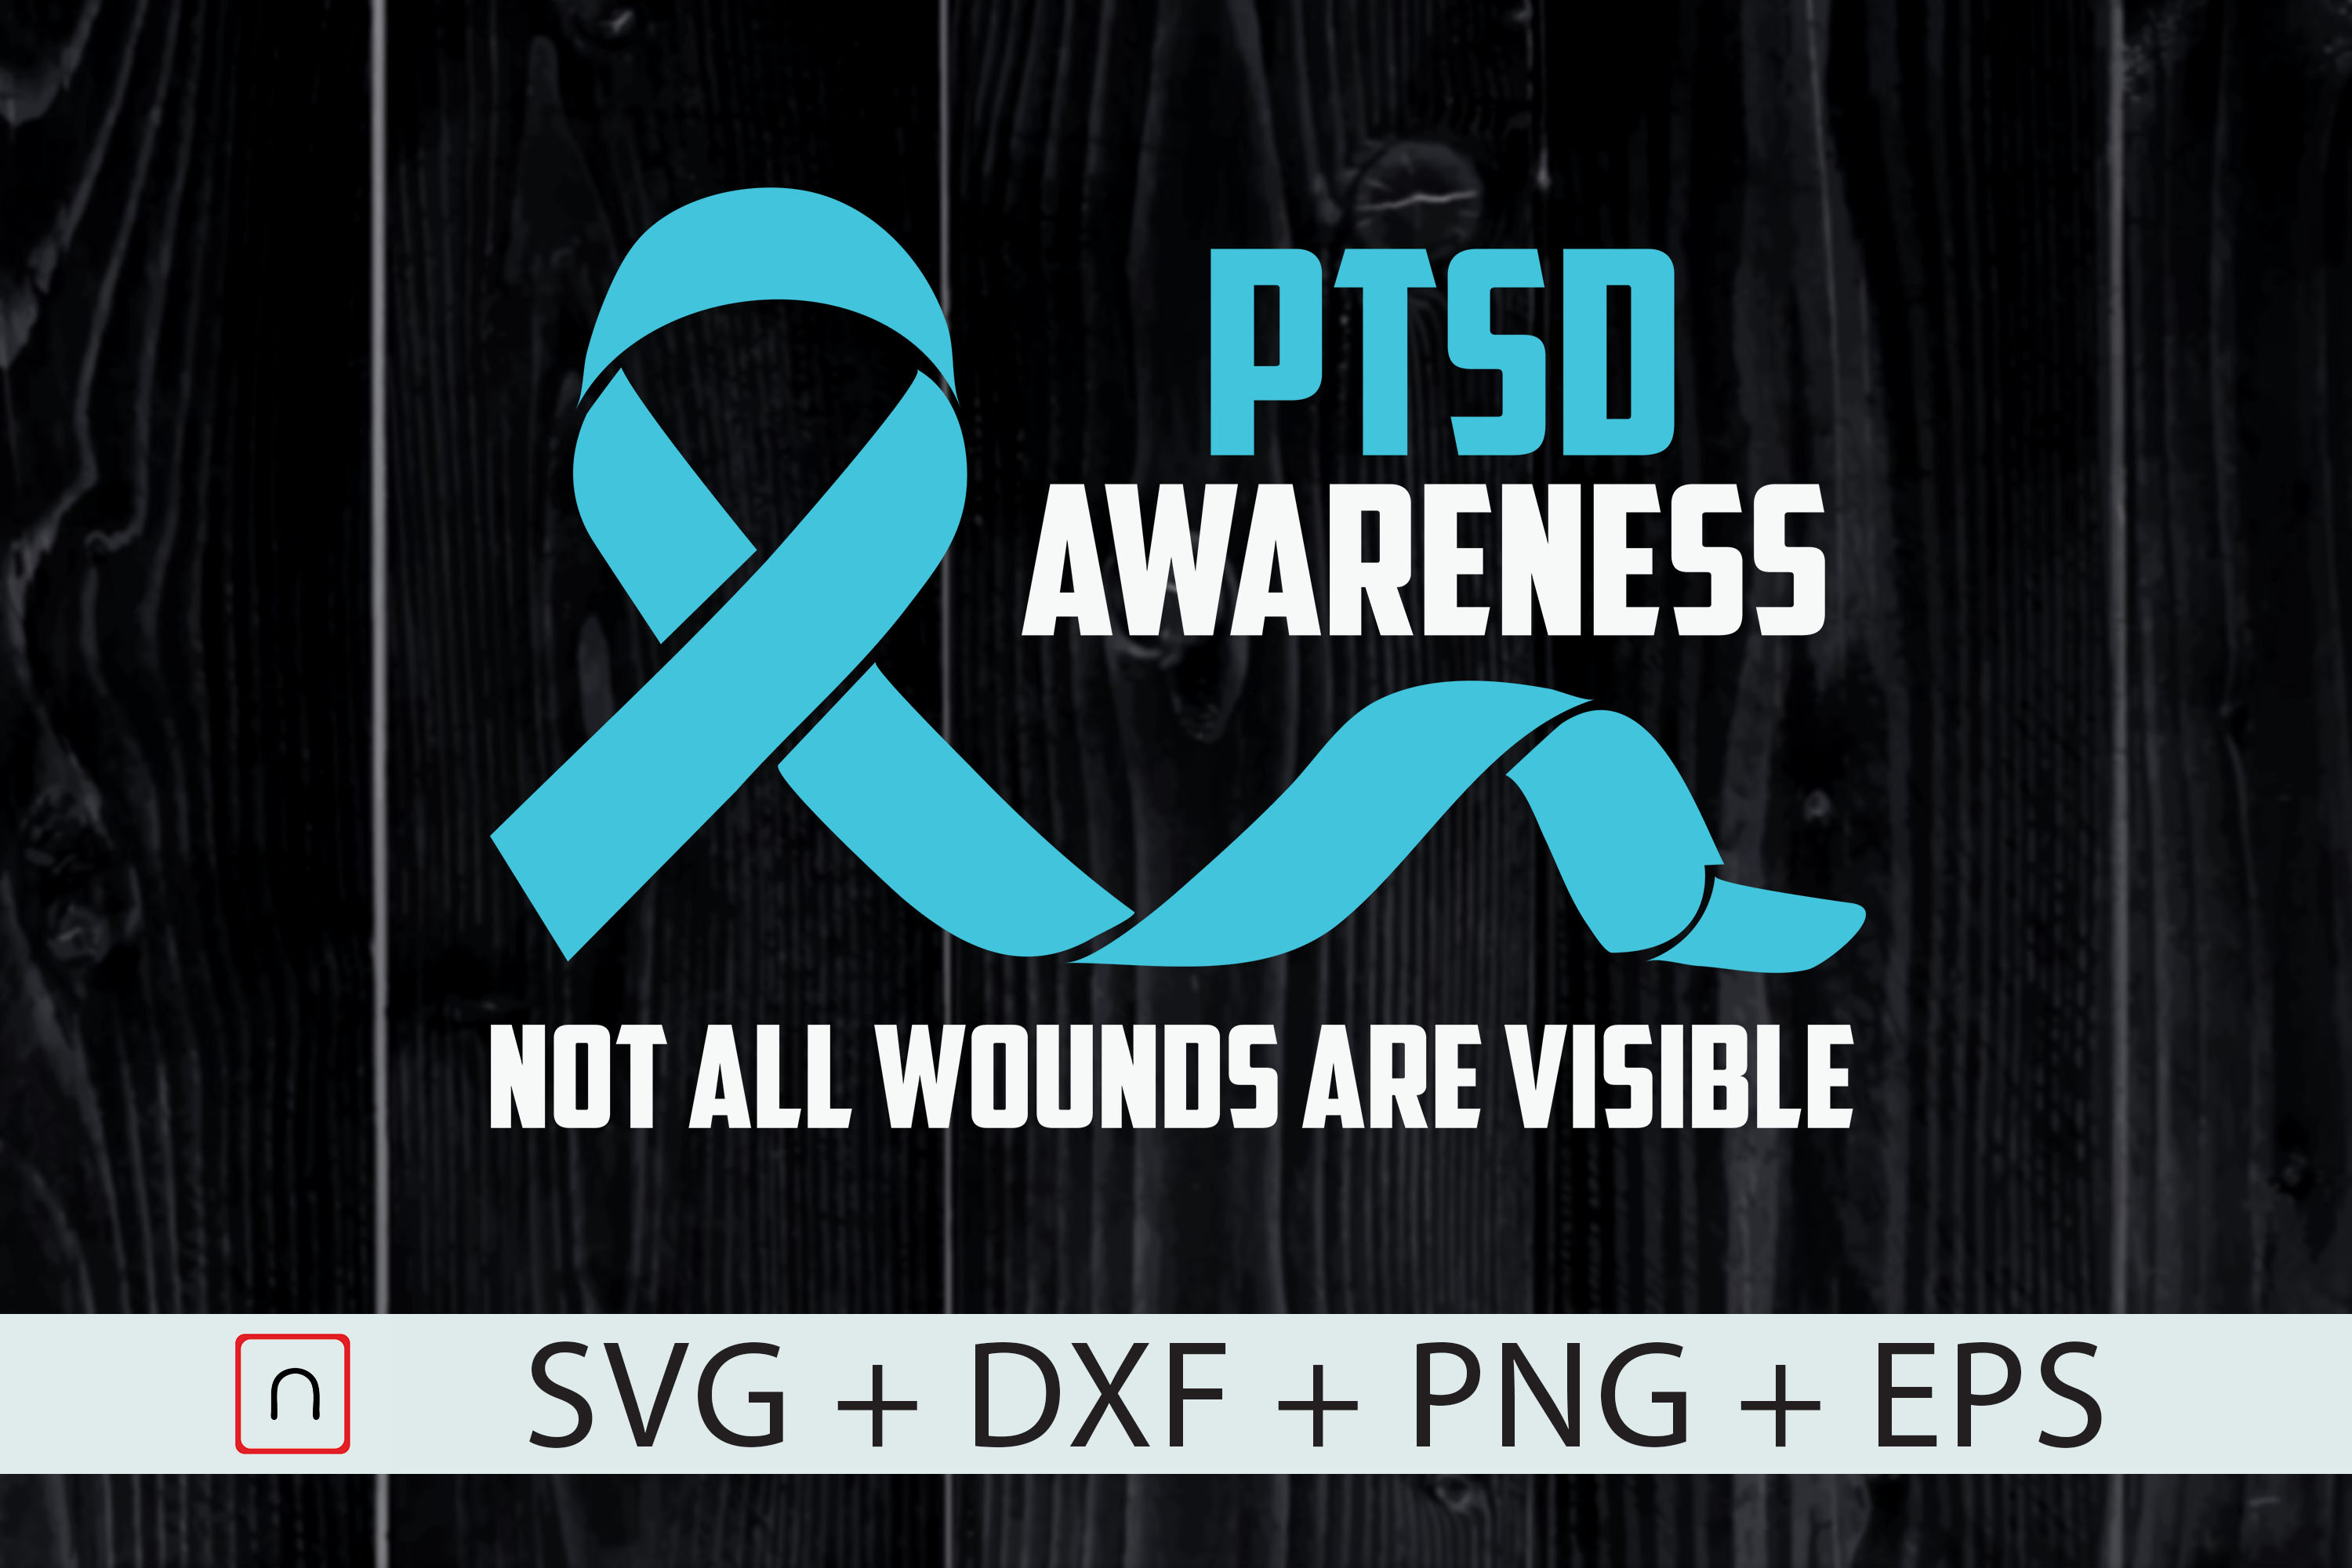 Download Free Awareness Not All Wounds Visible Graphic By Novalia Creative for Cricut Explore, Silhouette and other cutting machines.